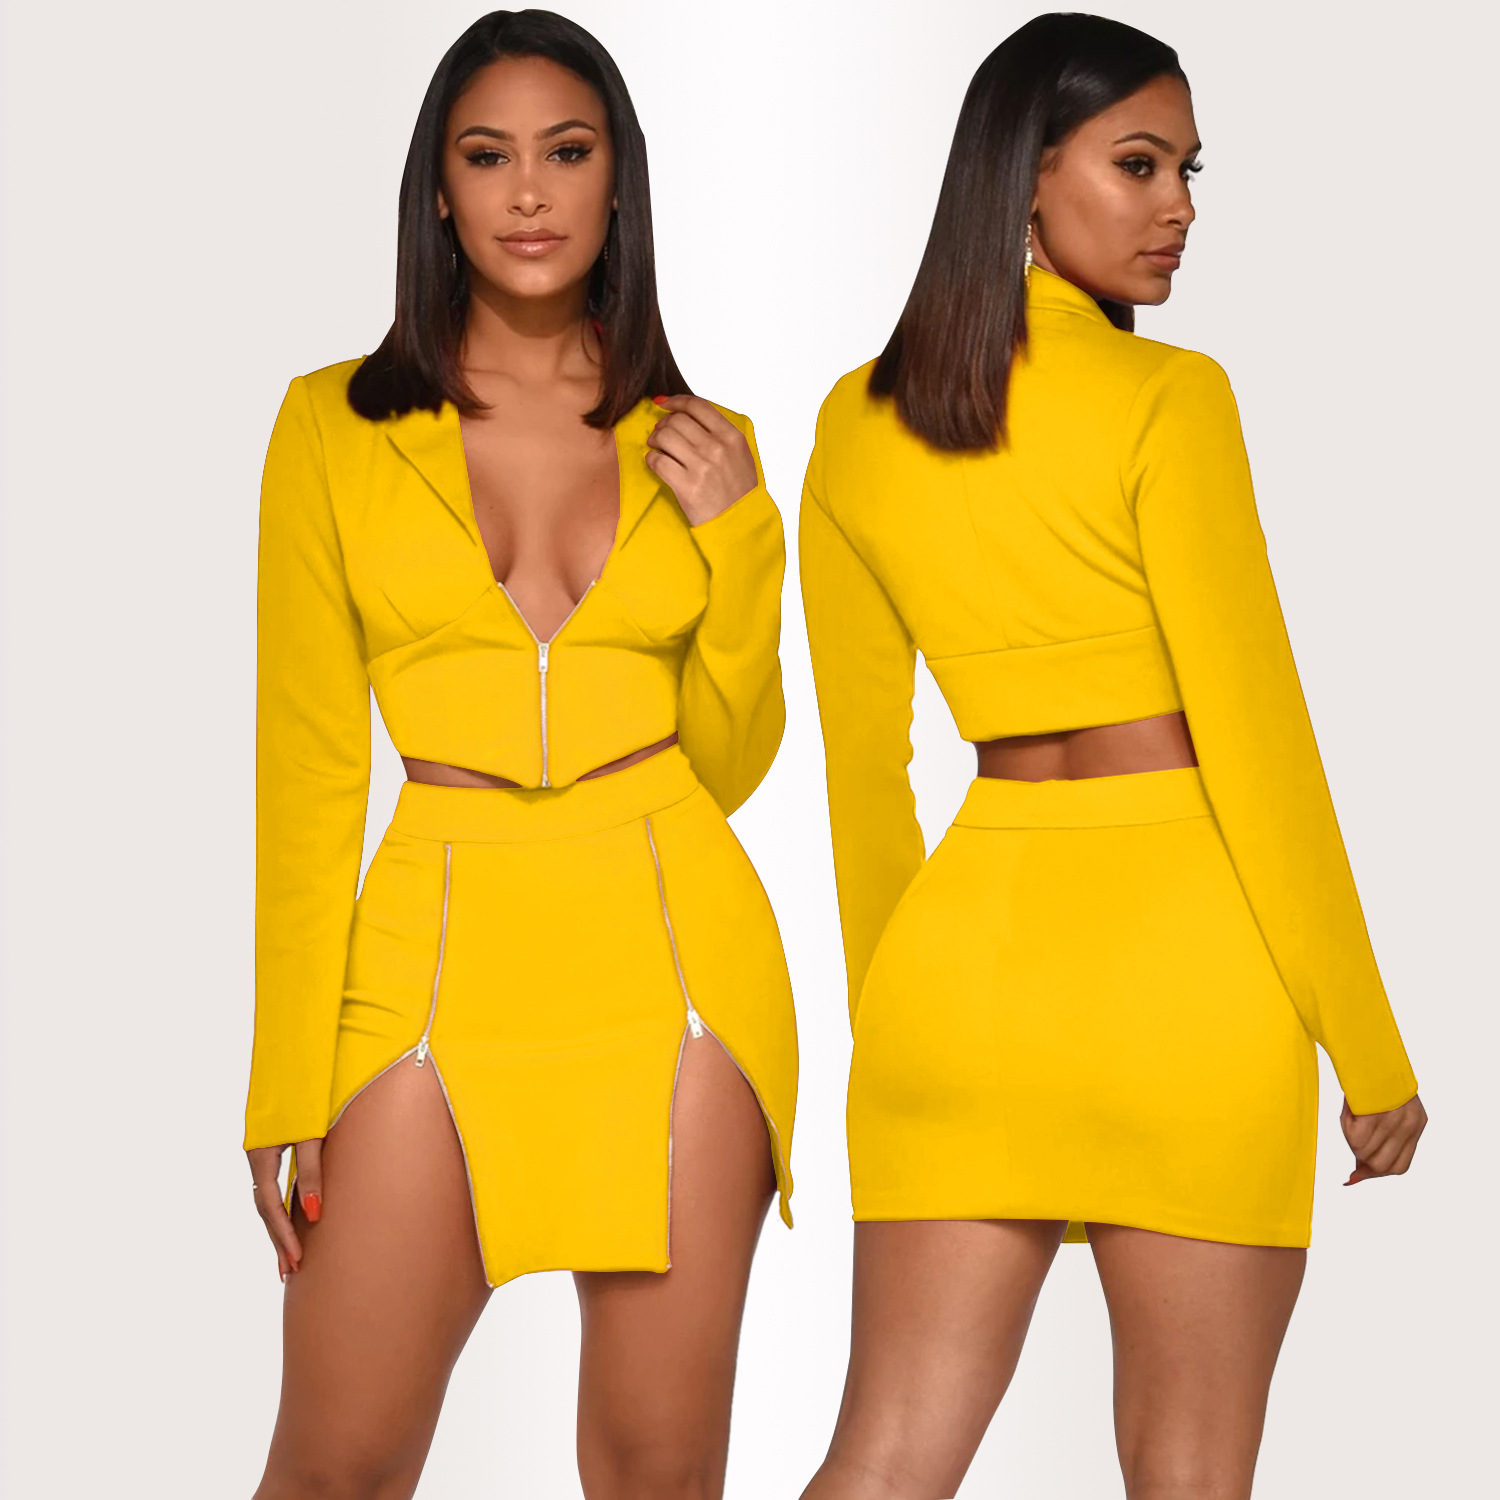 2 Piece Female Tracksuit Long Sleeve Crop Top And Skirt Set Elegant Matching Sets Evening Party Suit Outfits Plus Size H3334